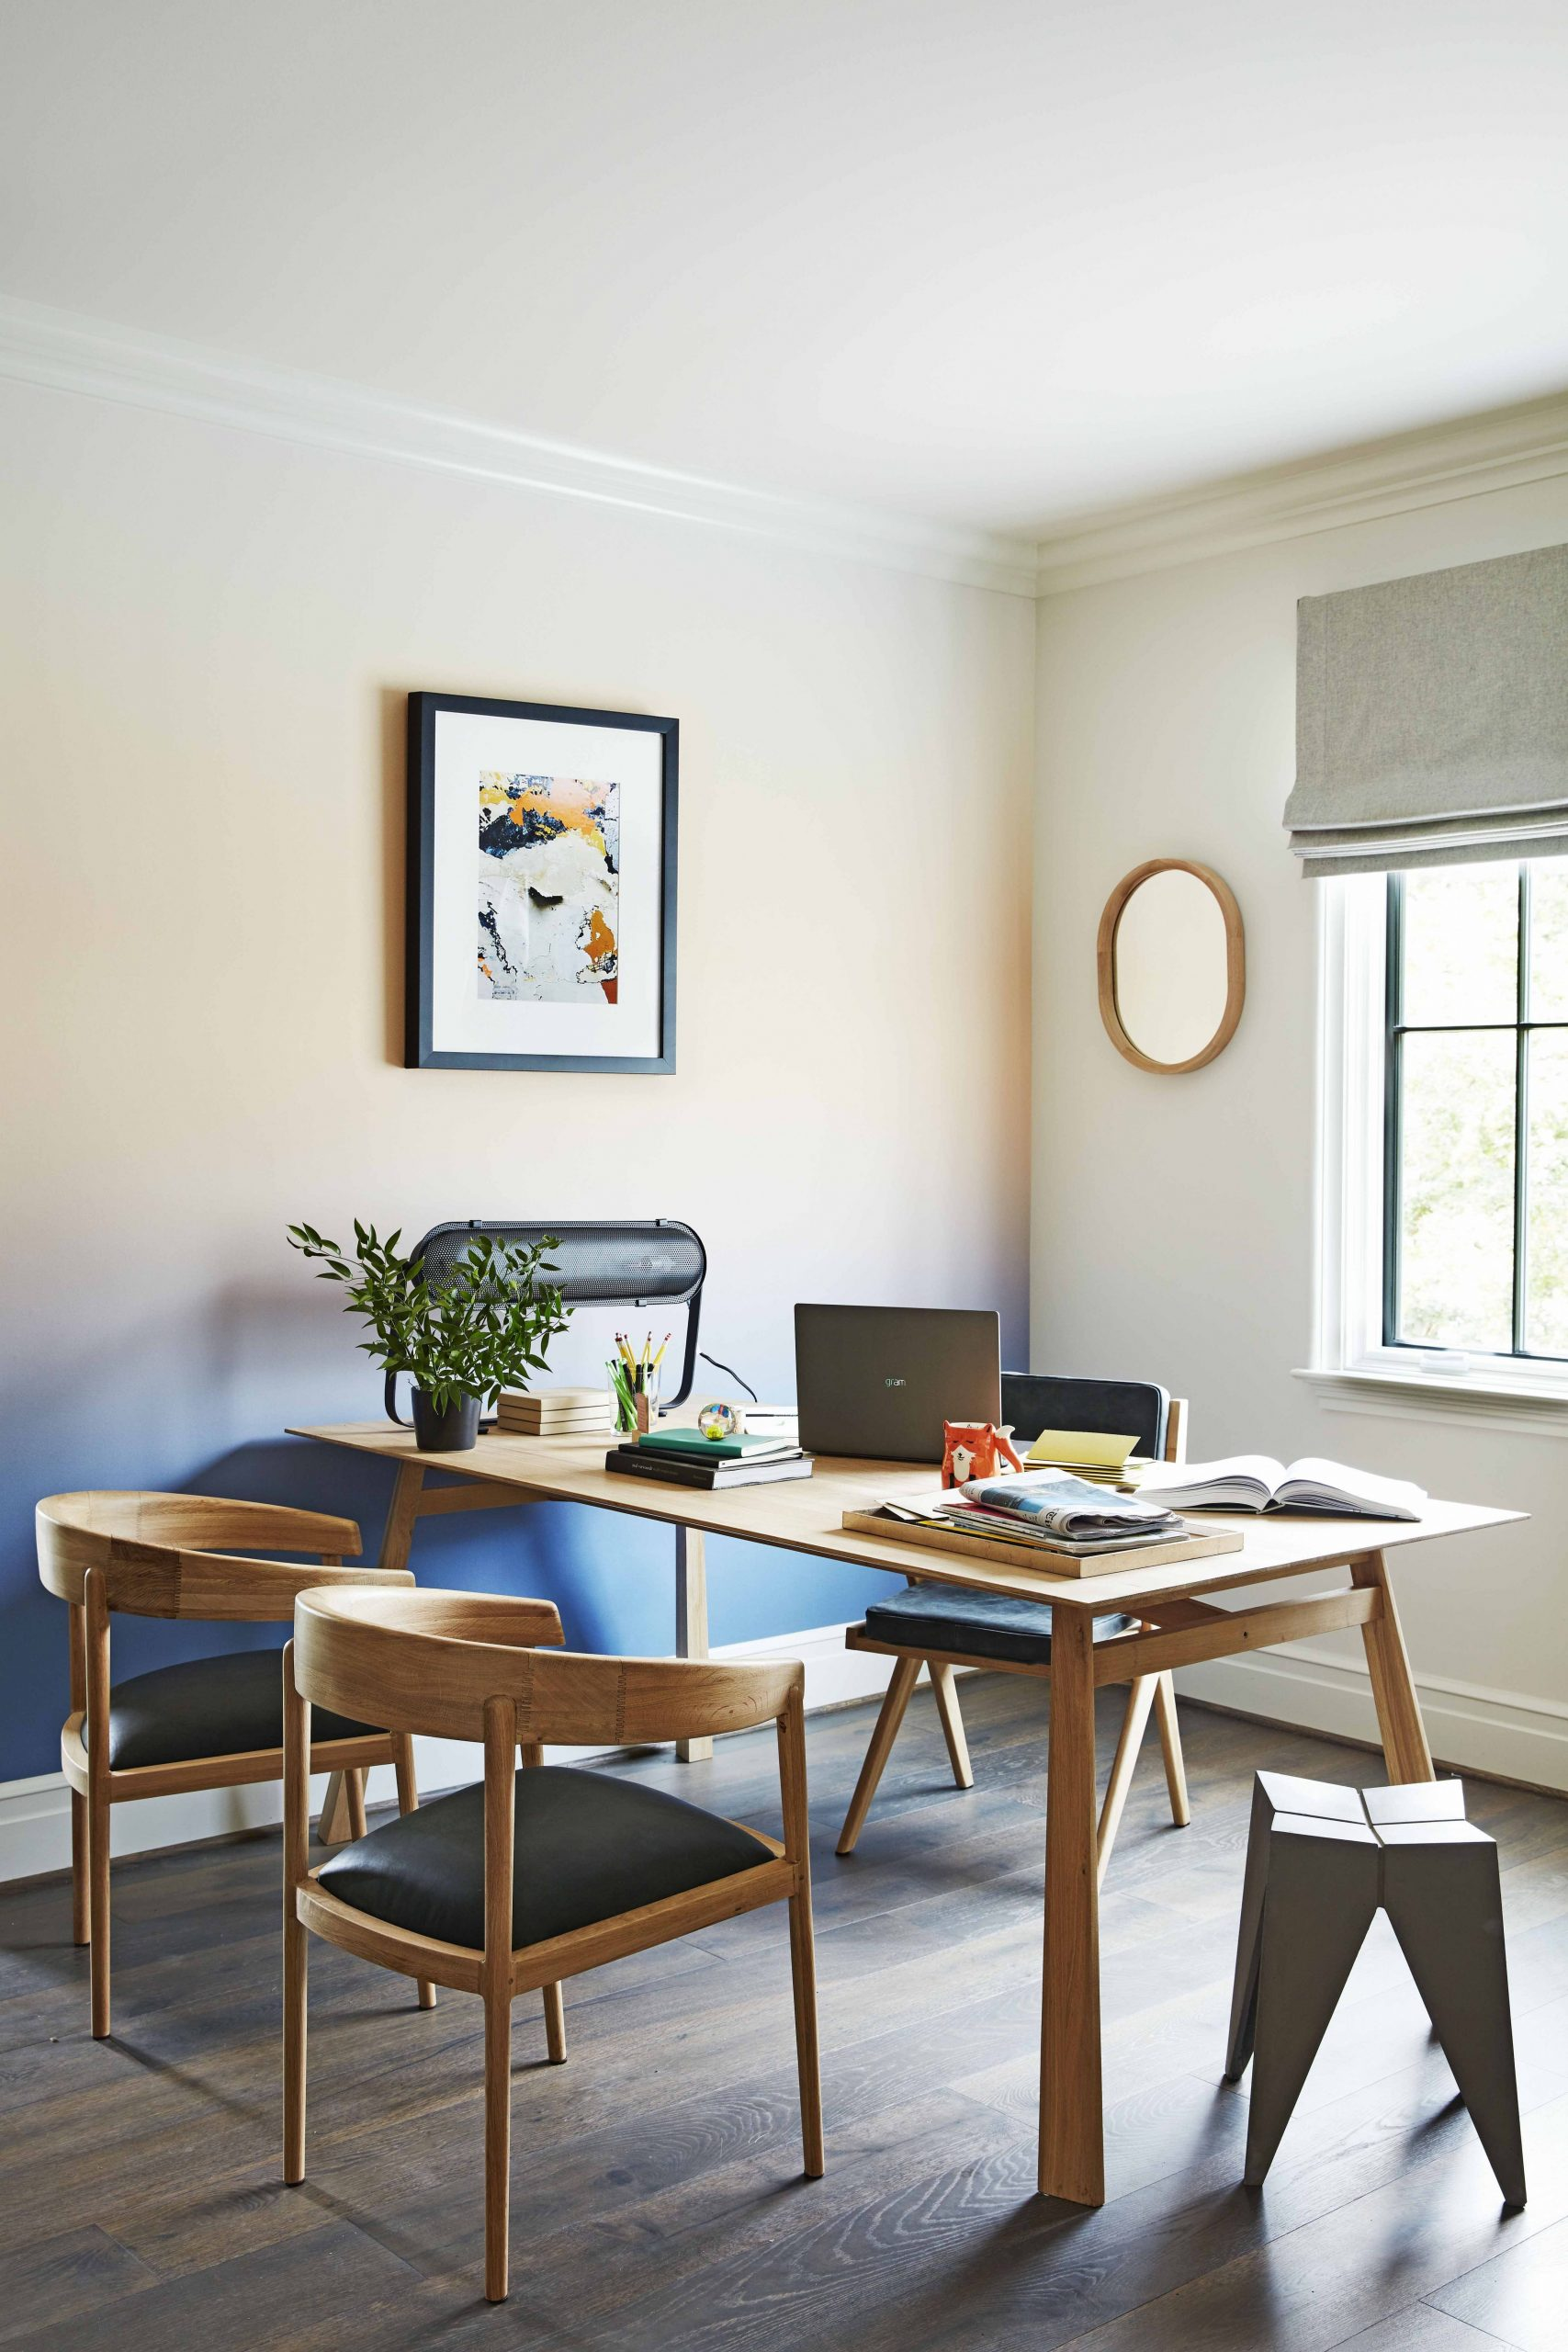 11 Best Home Office Ideas - Home Office Decor Photos - Home Office Ideas In Dining Room